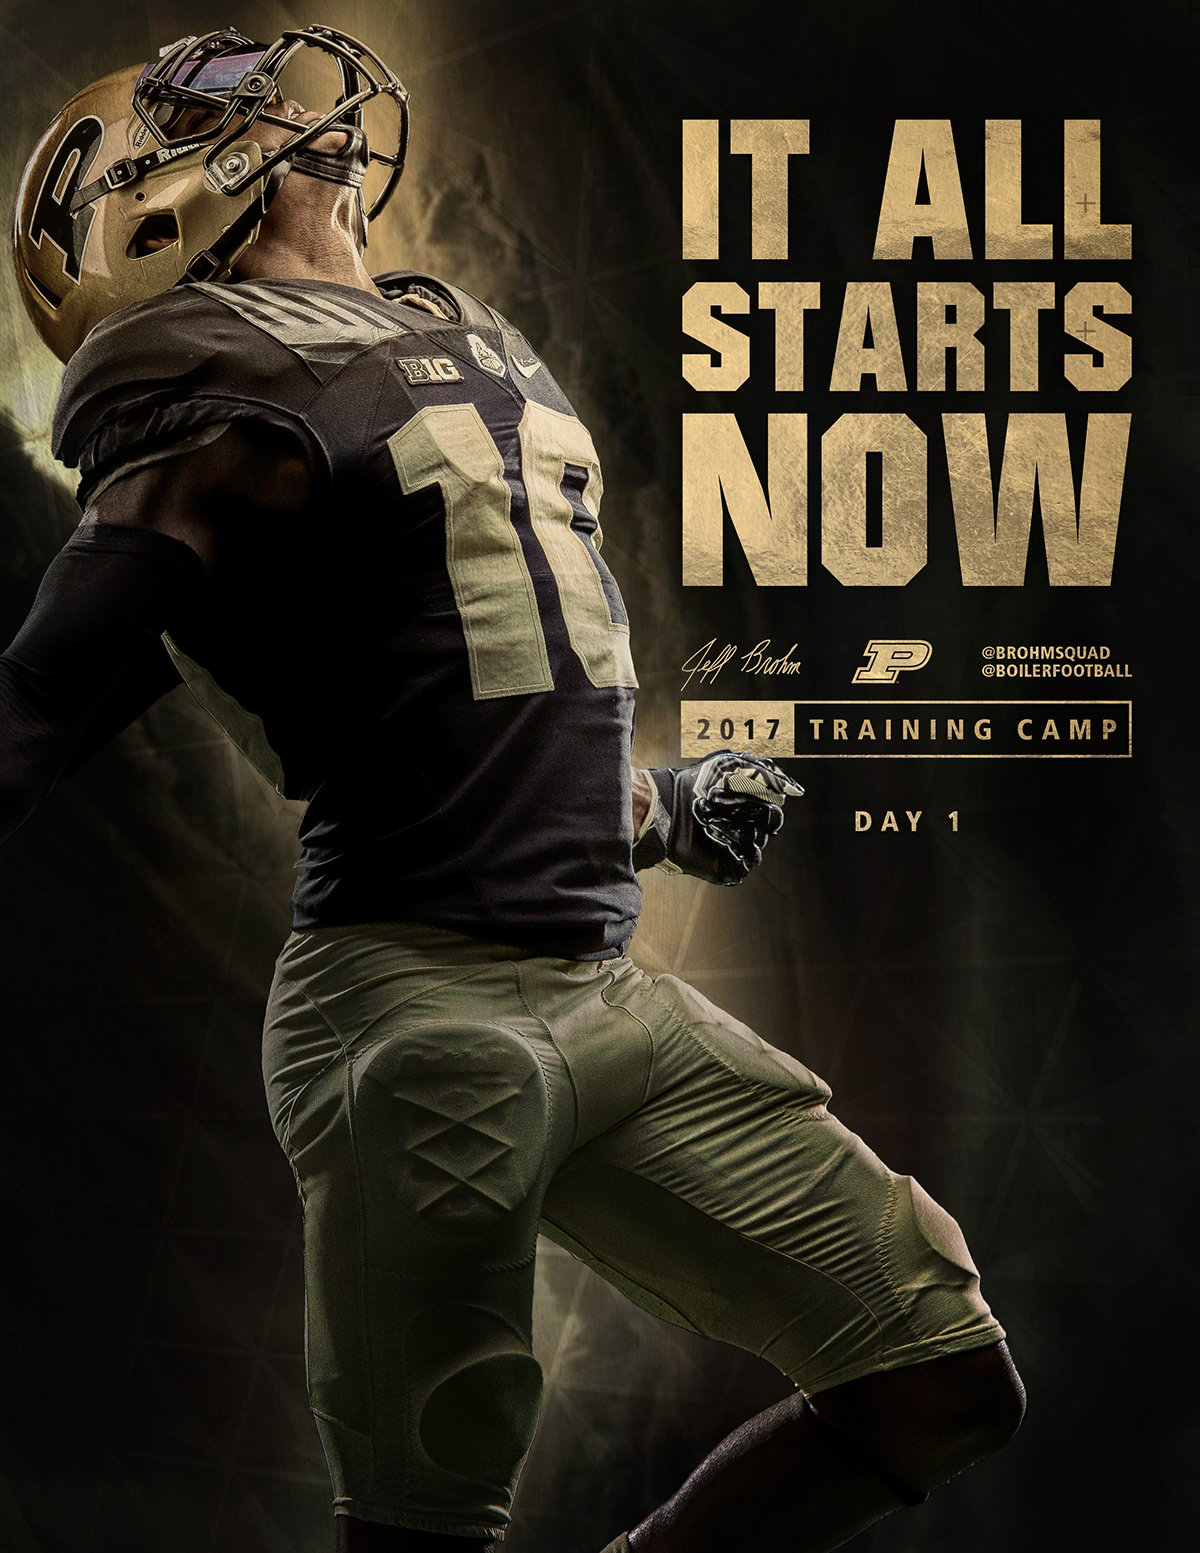 Purdue Sports Design Inspiration Sports Graphic Design Football Poses